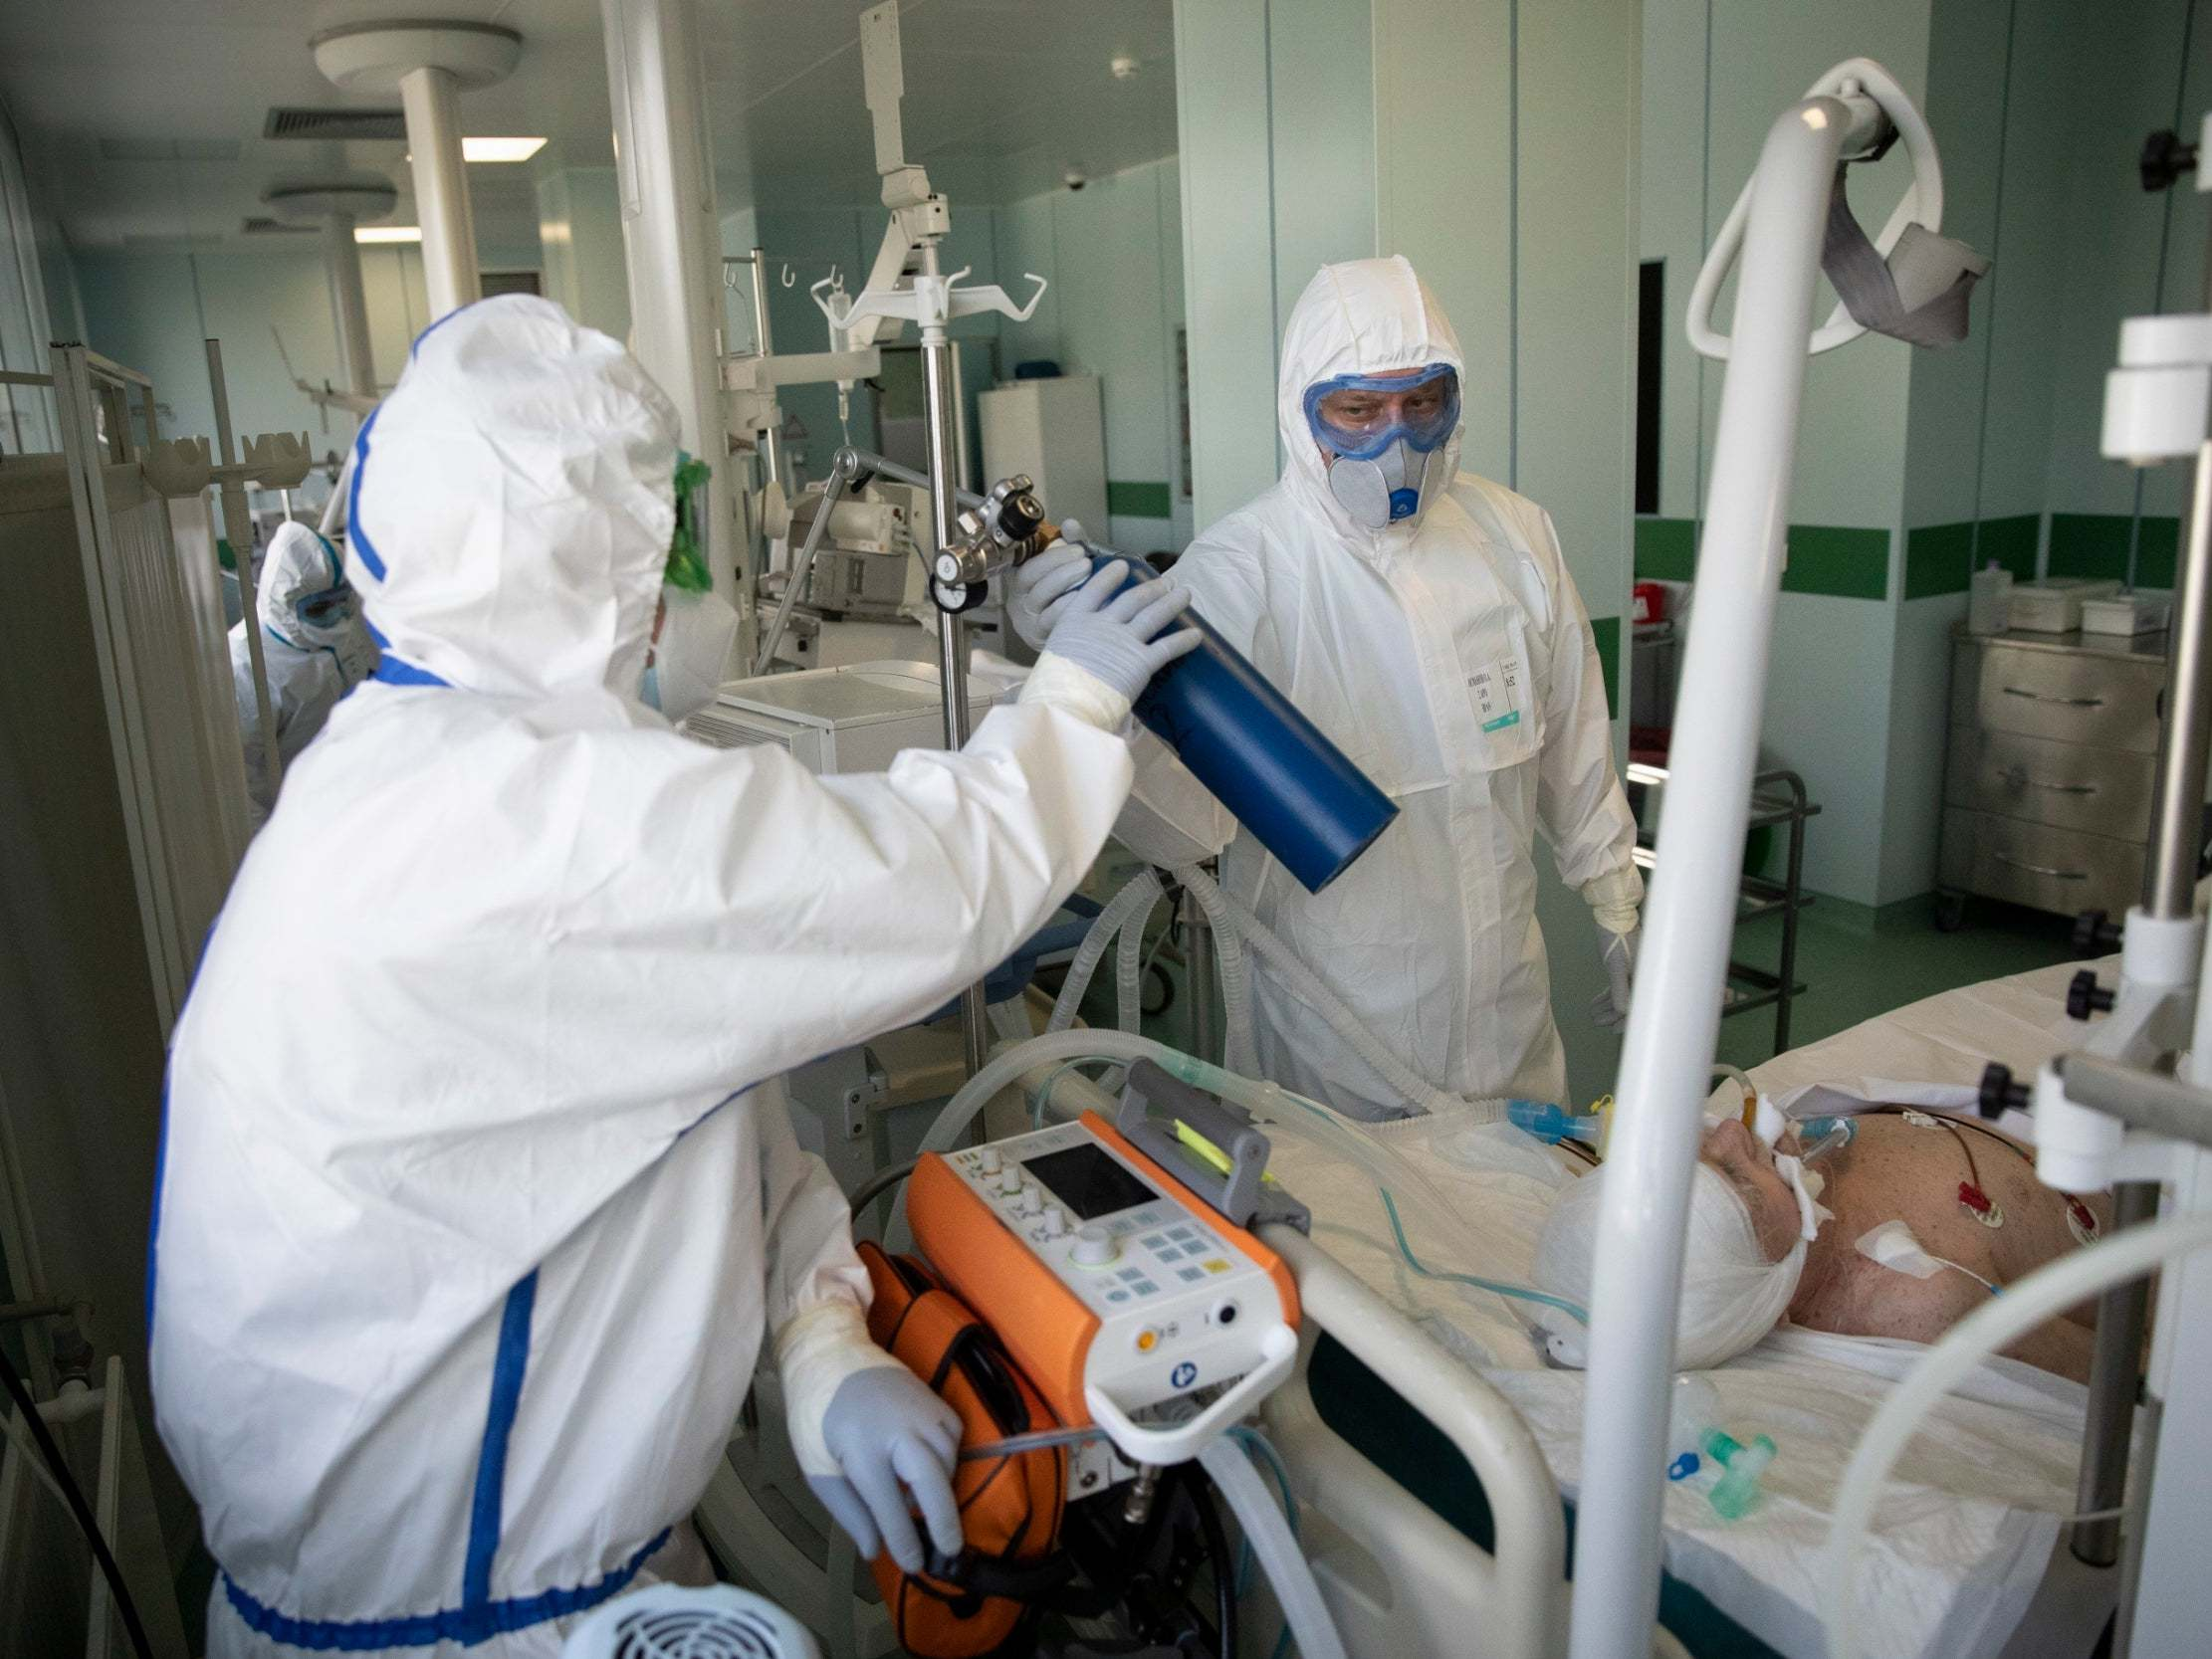 Coronavirus news – live: China reports zero new cases for first time as drug touted by Trump to treat Covid-19 linked to higher death risk